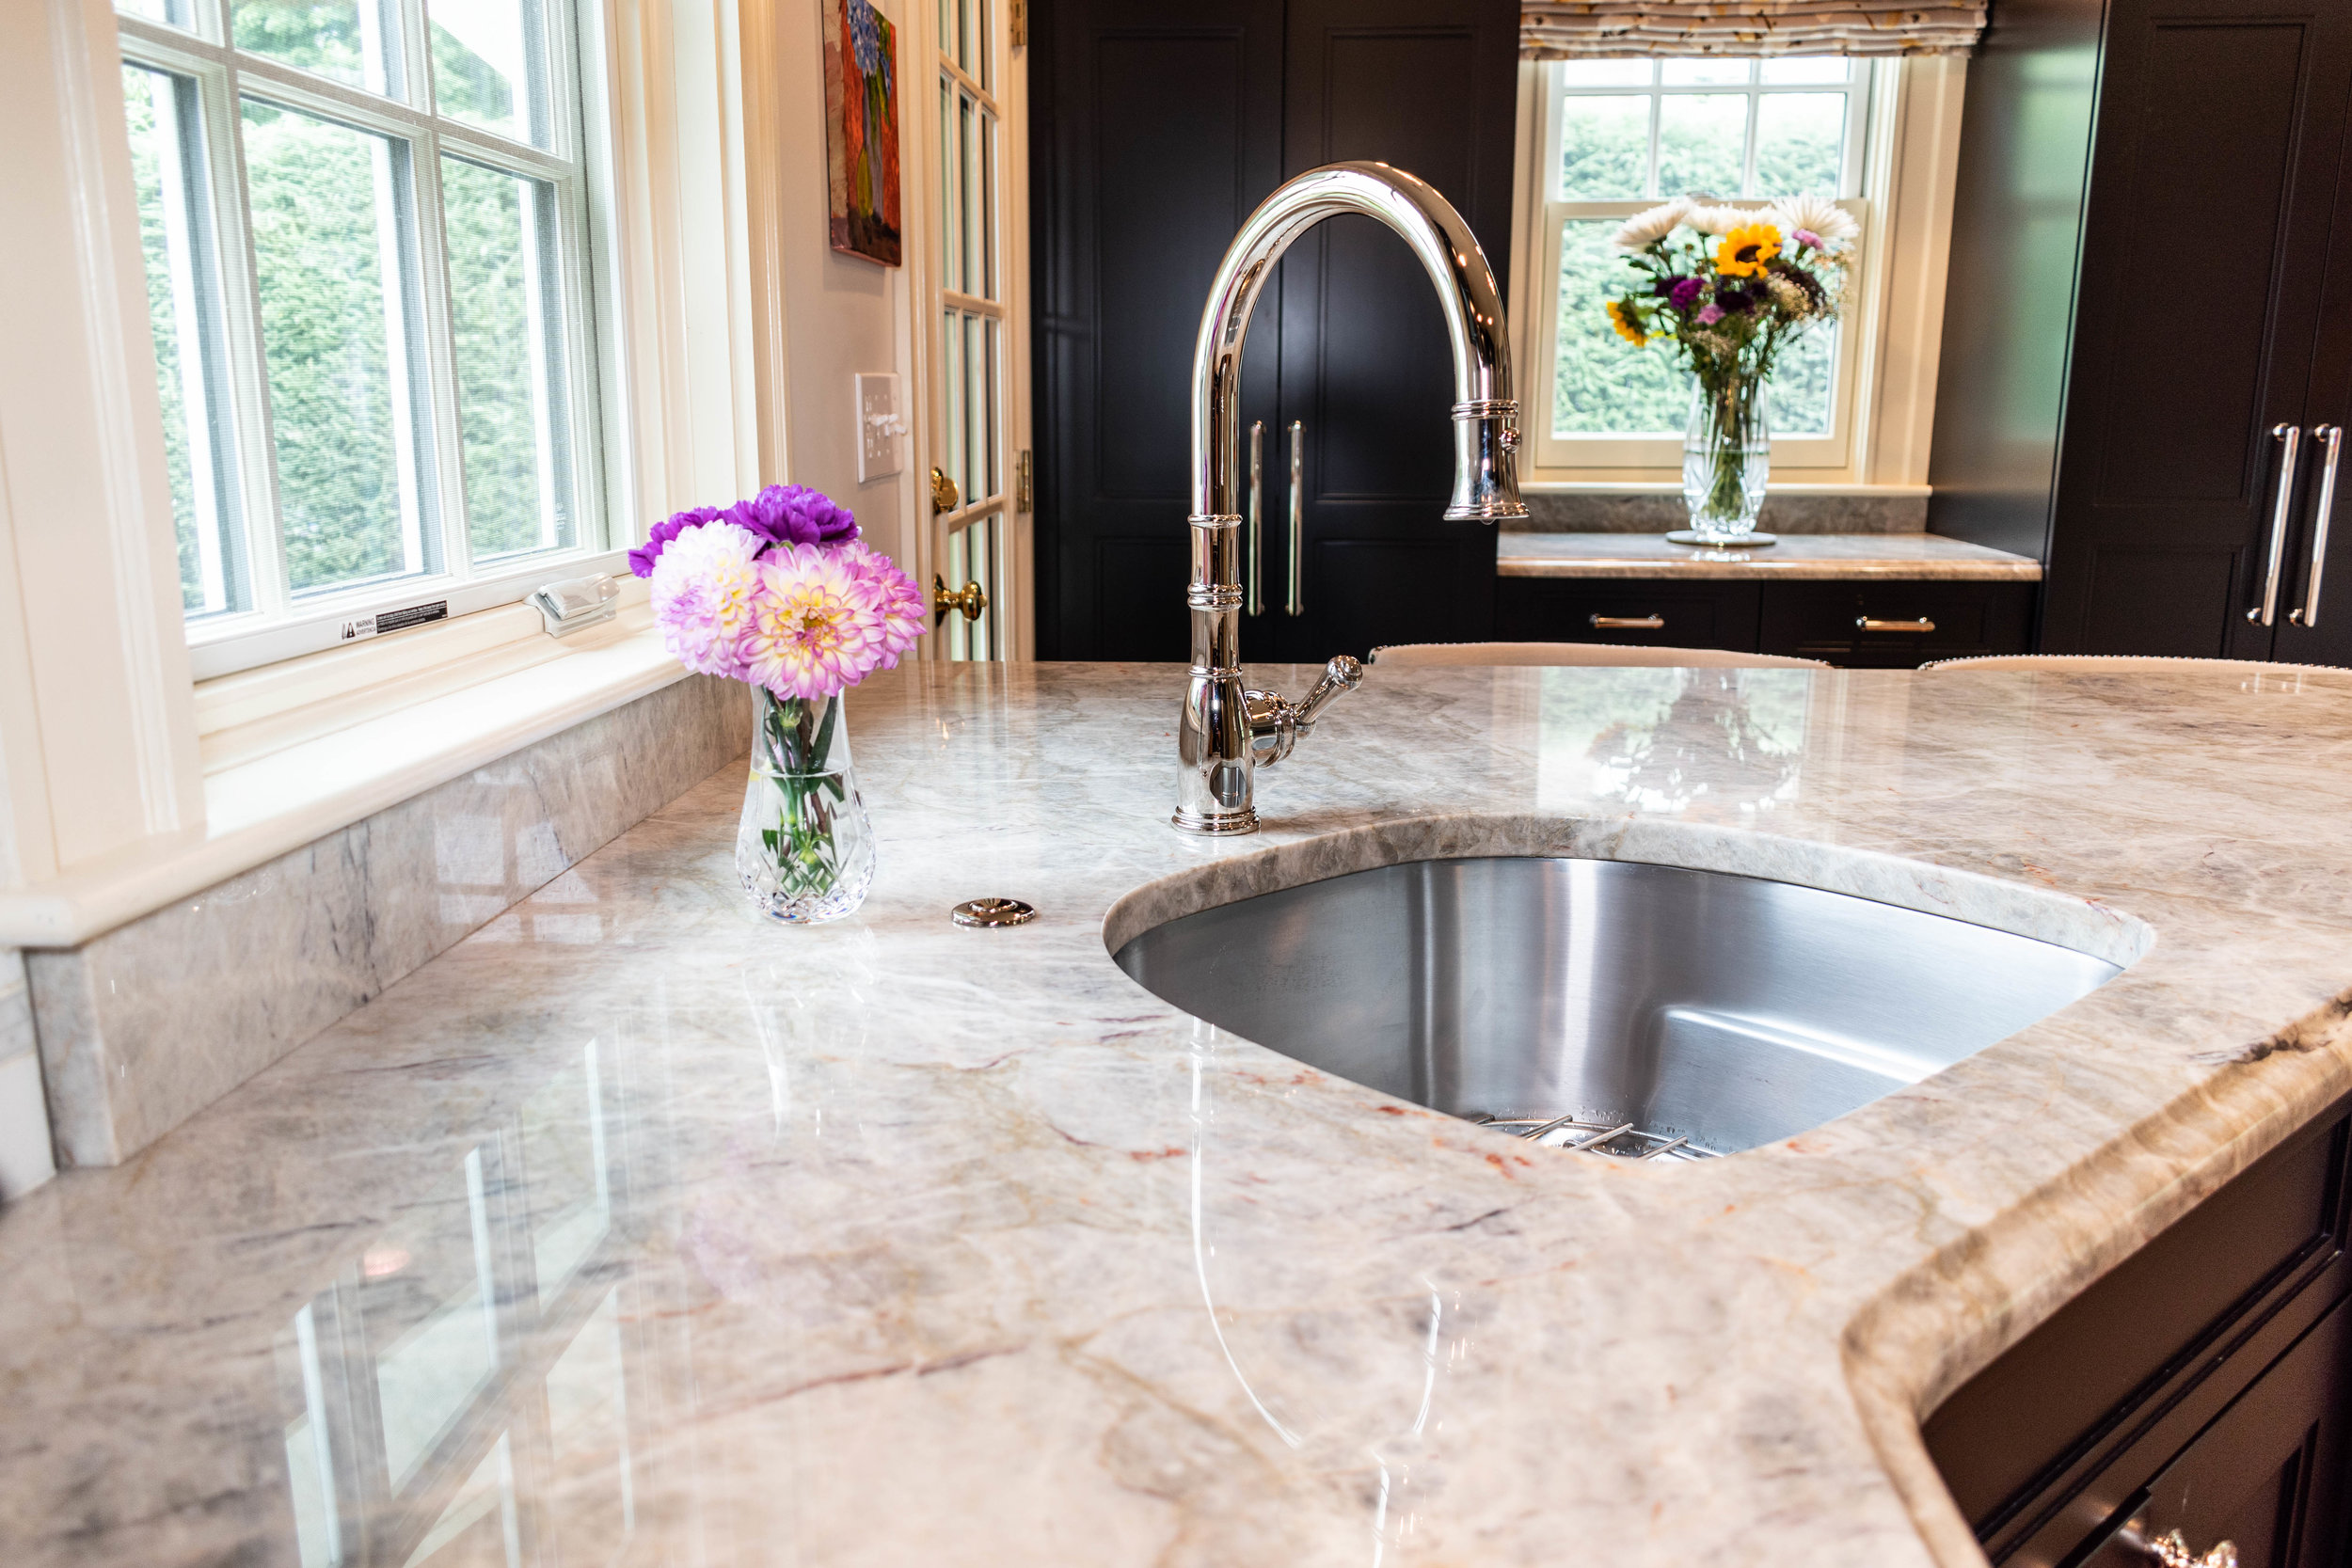 Material: Allure  Thickness, Finish & Stone Type: 3CM Polished Quartzite  Edge: Ogee  Sink: Client's sink: Under-Mount